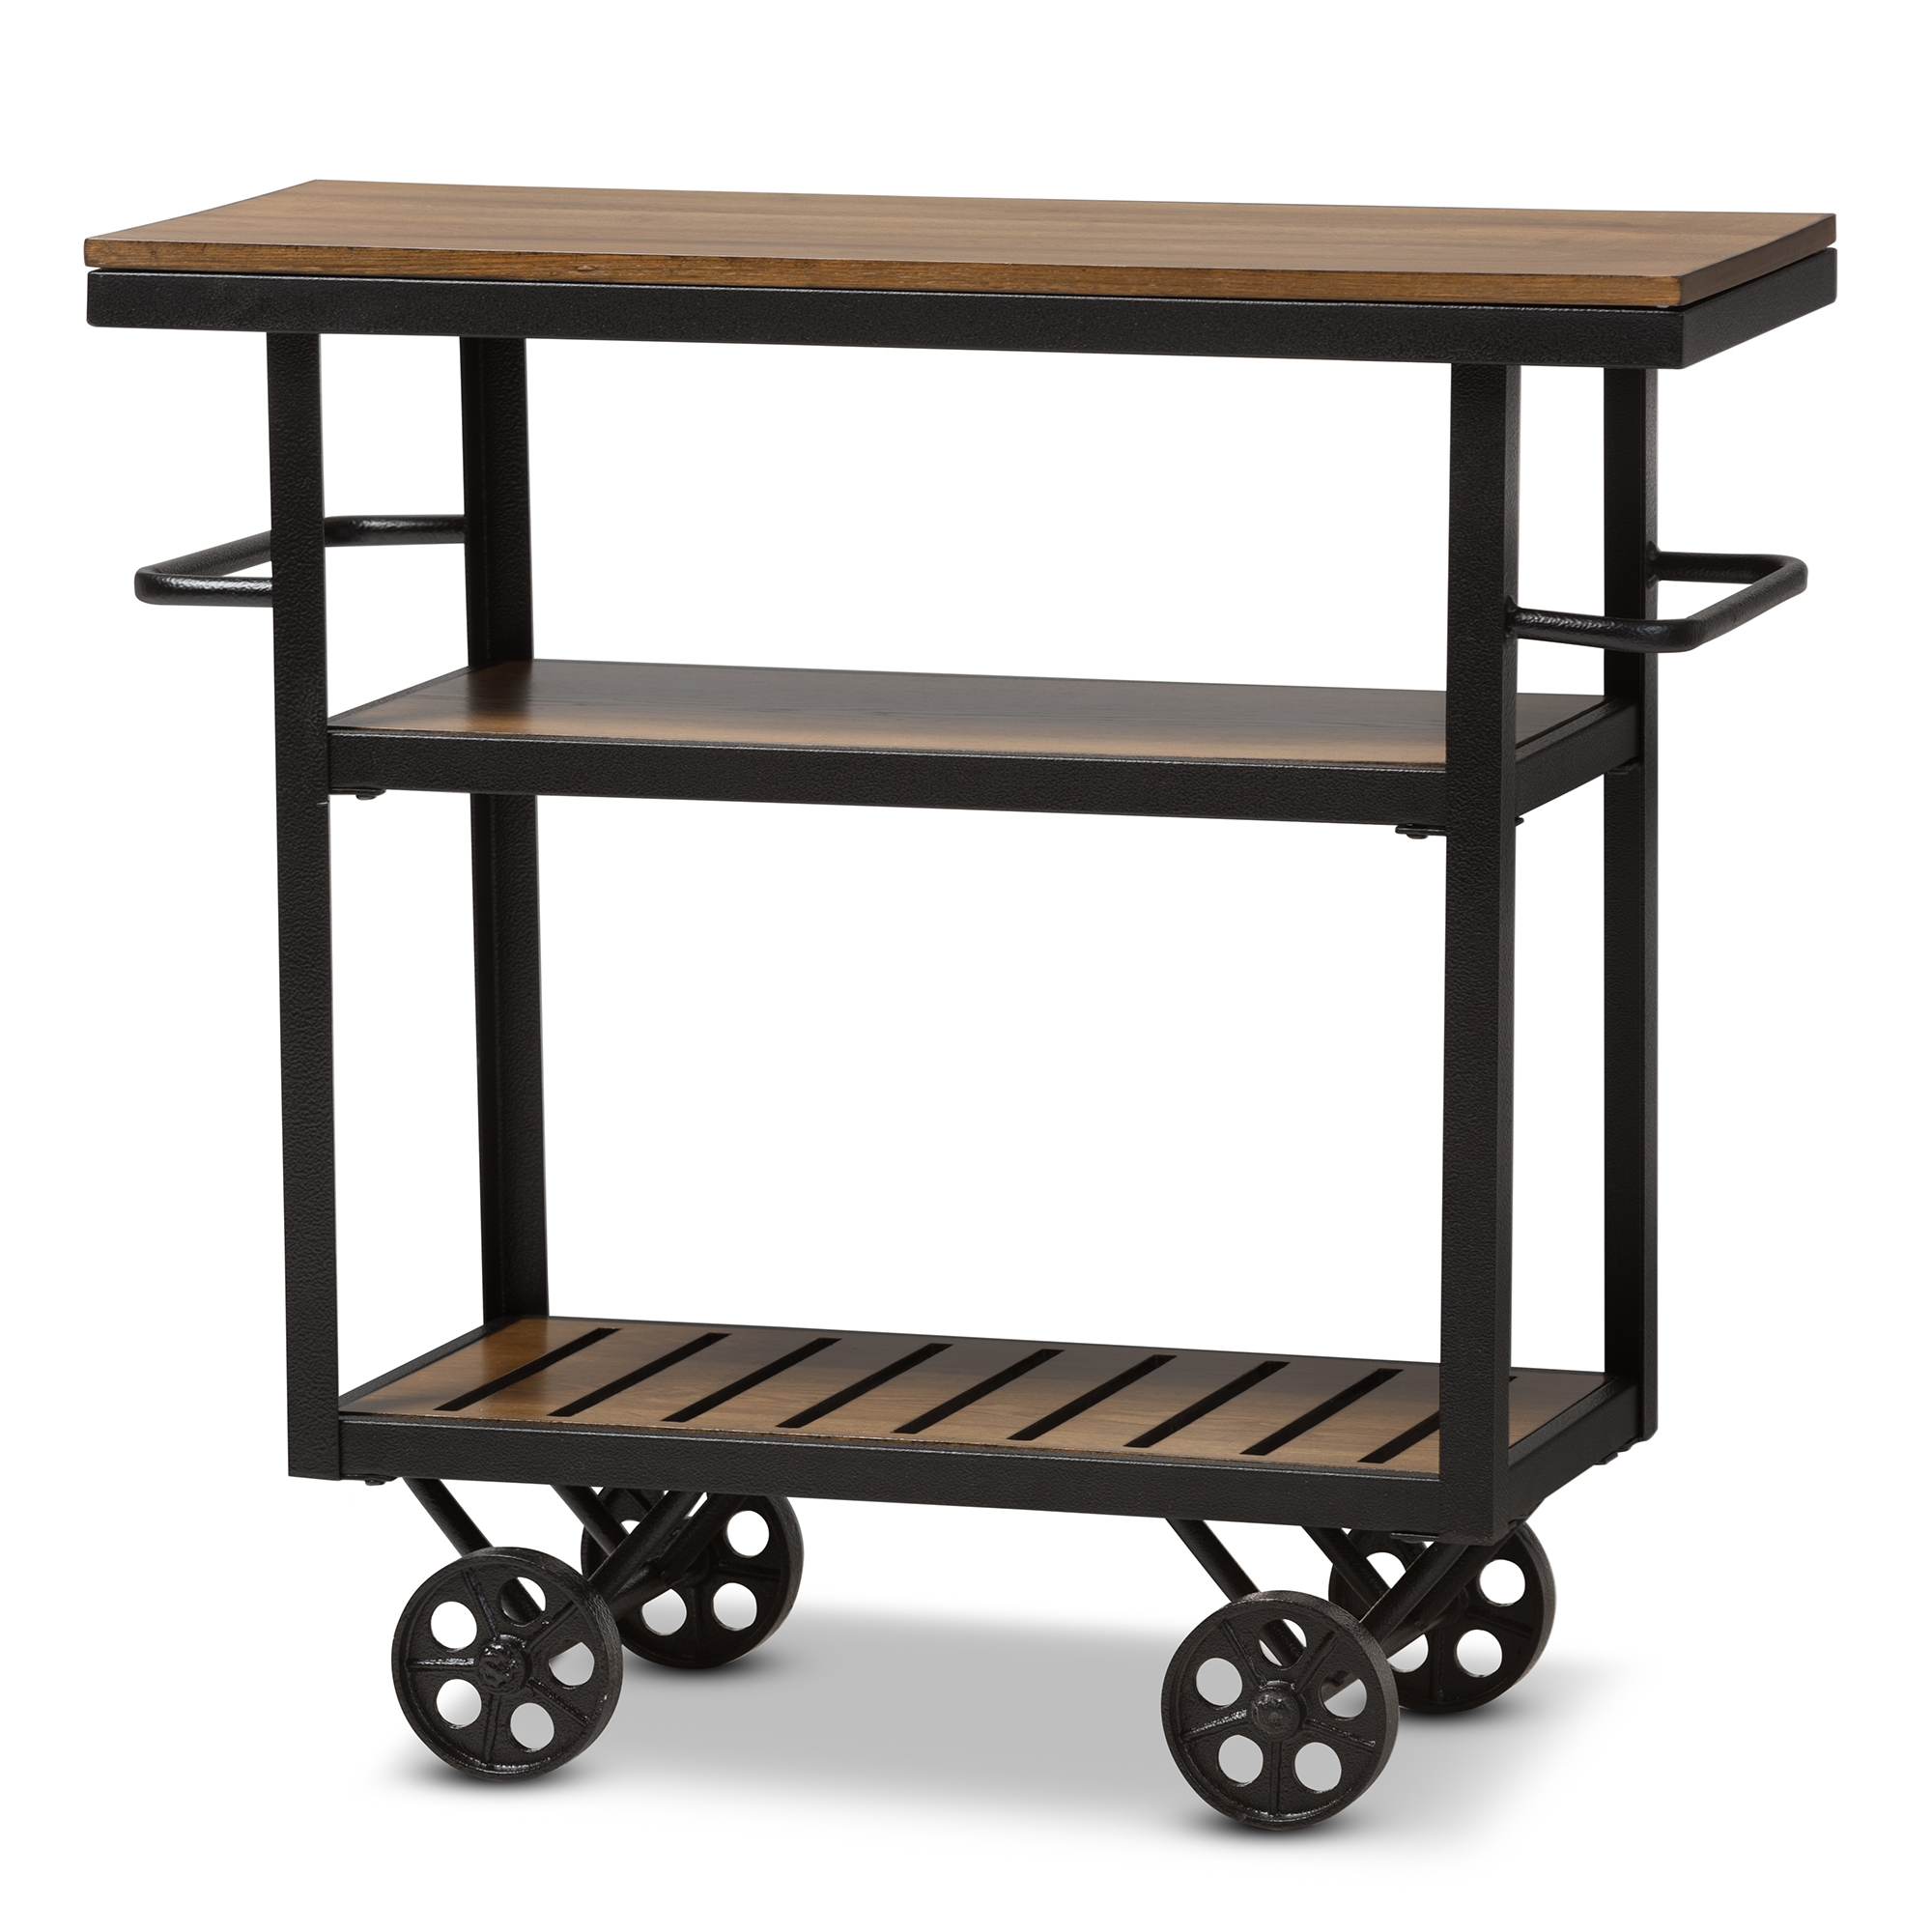 Delicieux Baxton Studio Kennedy Rustic Industrial Style Antique Black Textured  Finished Metal Distressed Wood Mobile Serving Cart ...